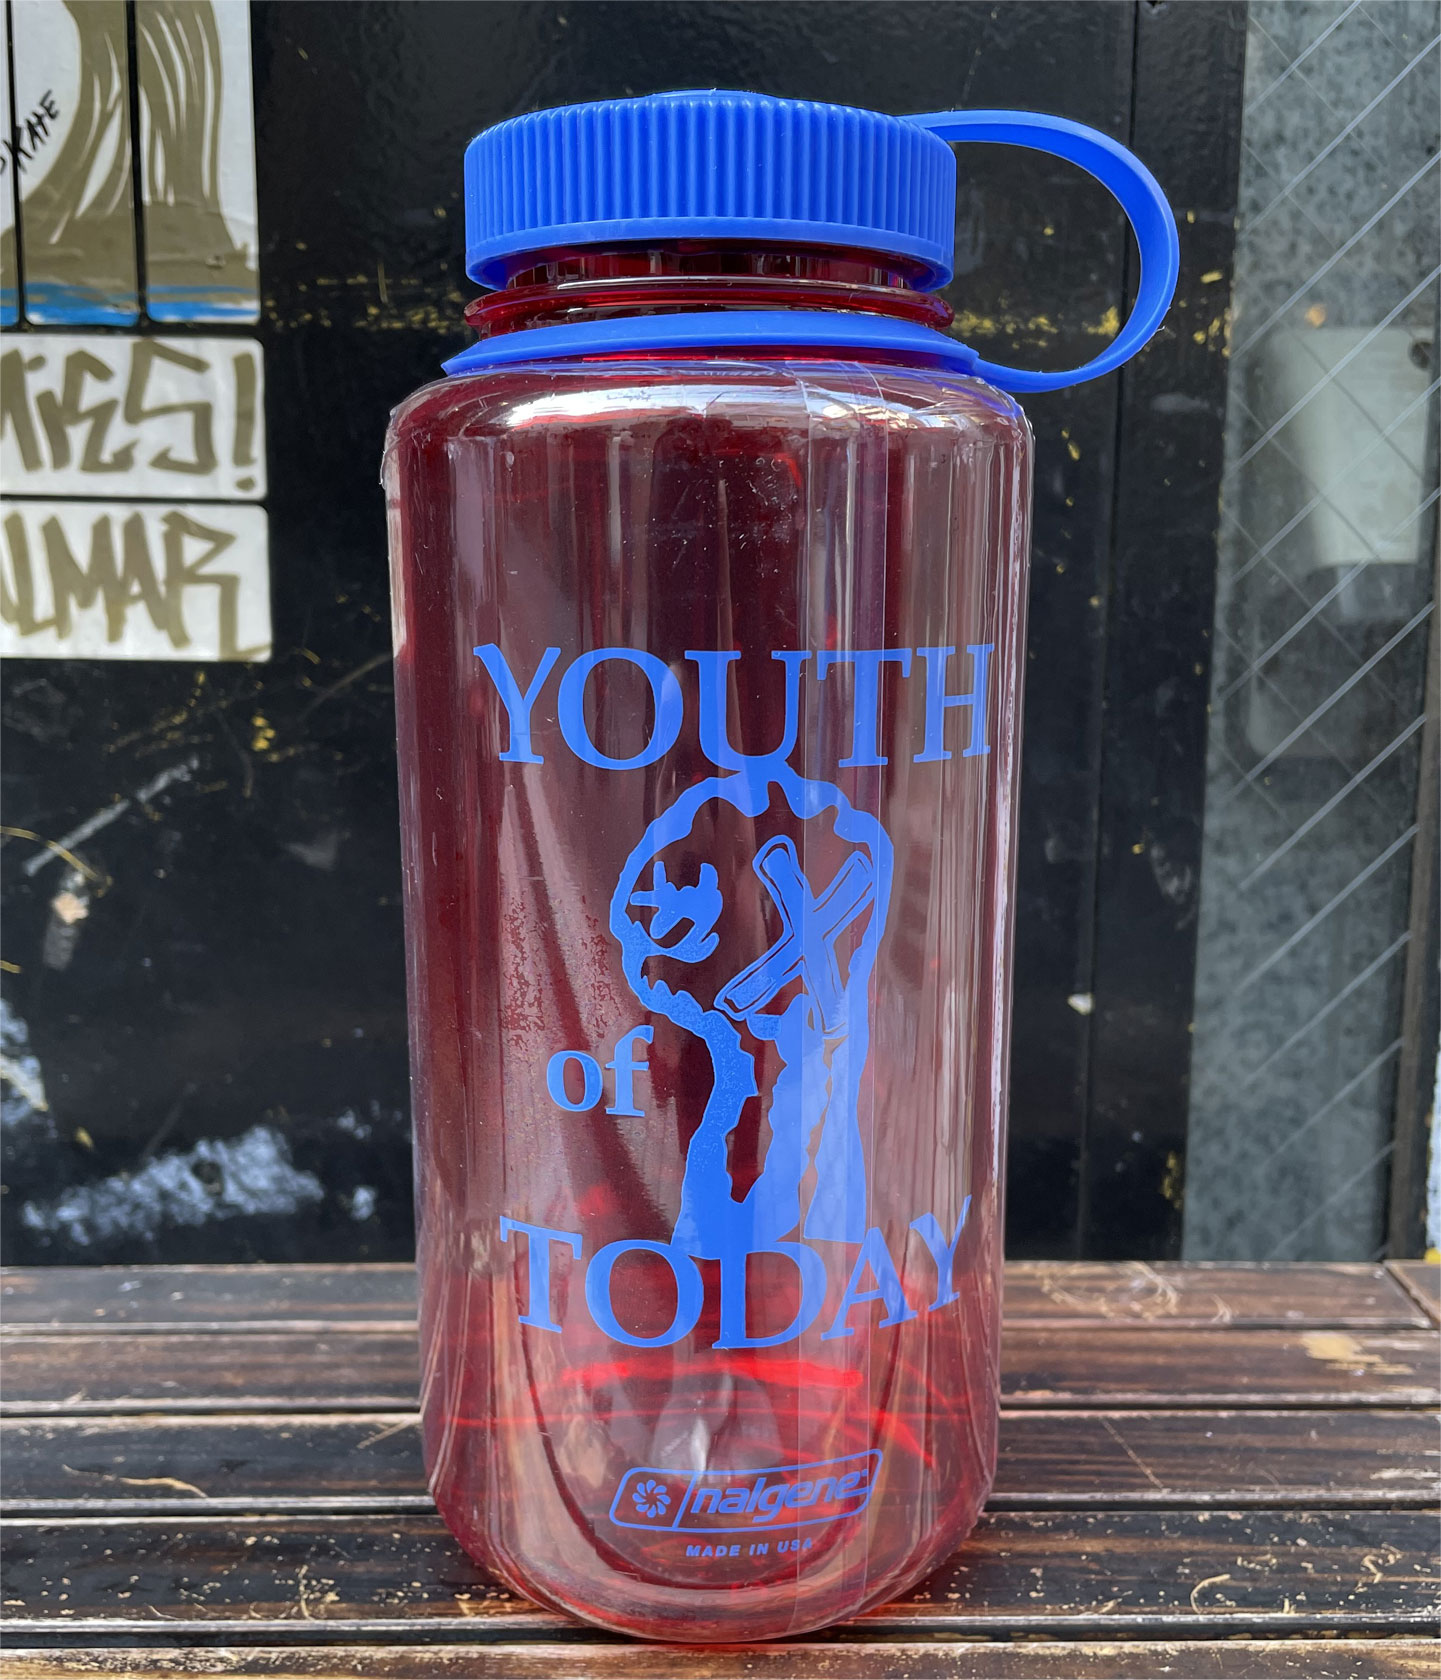 YOUTH OF TODAY x Nalgene ウォーターボトル